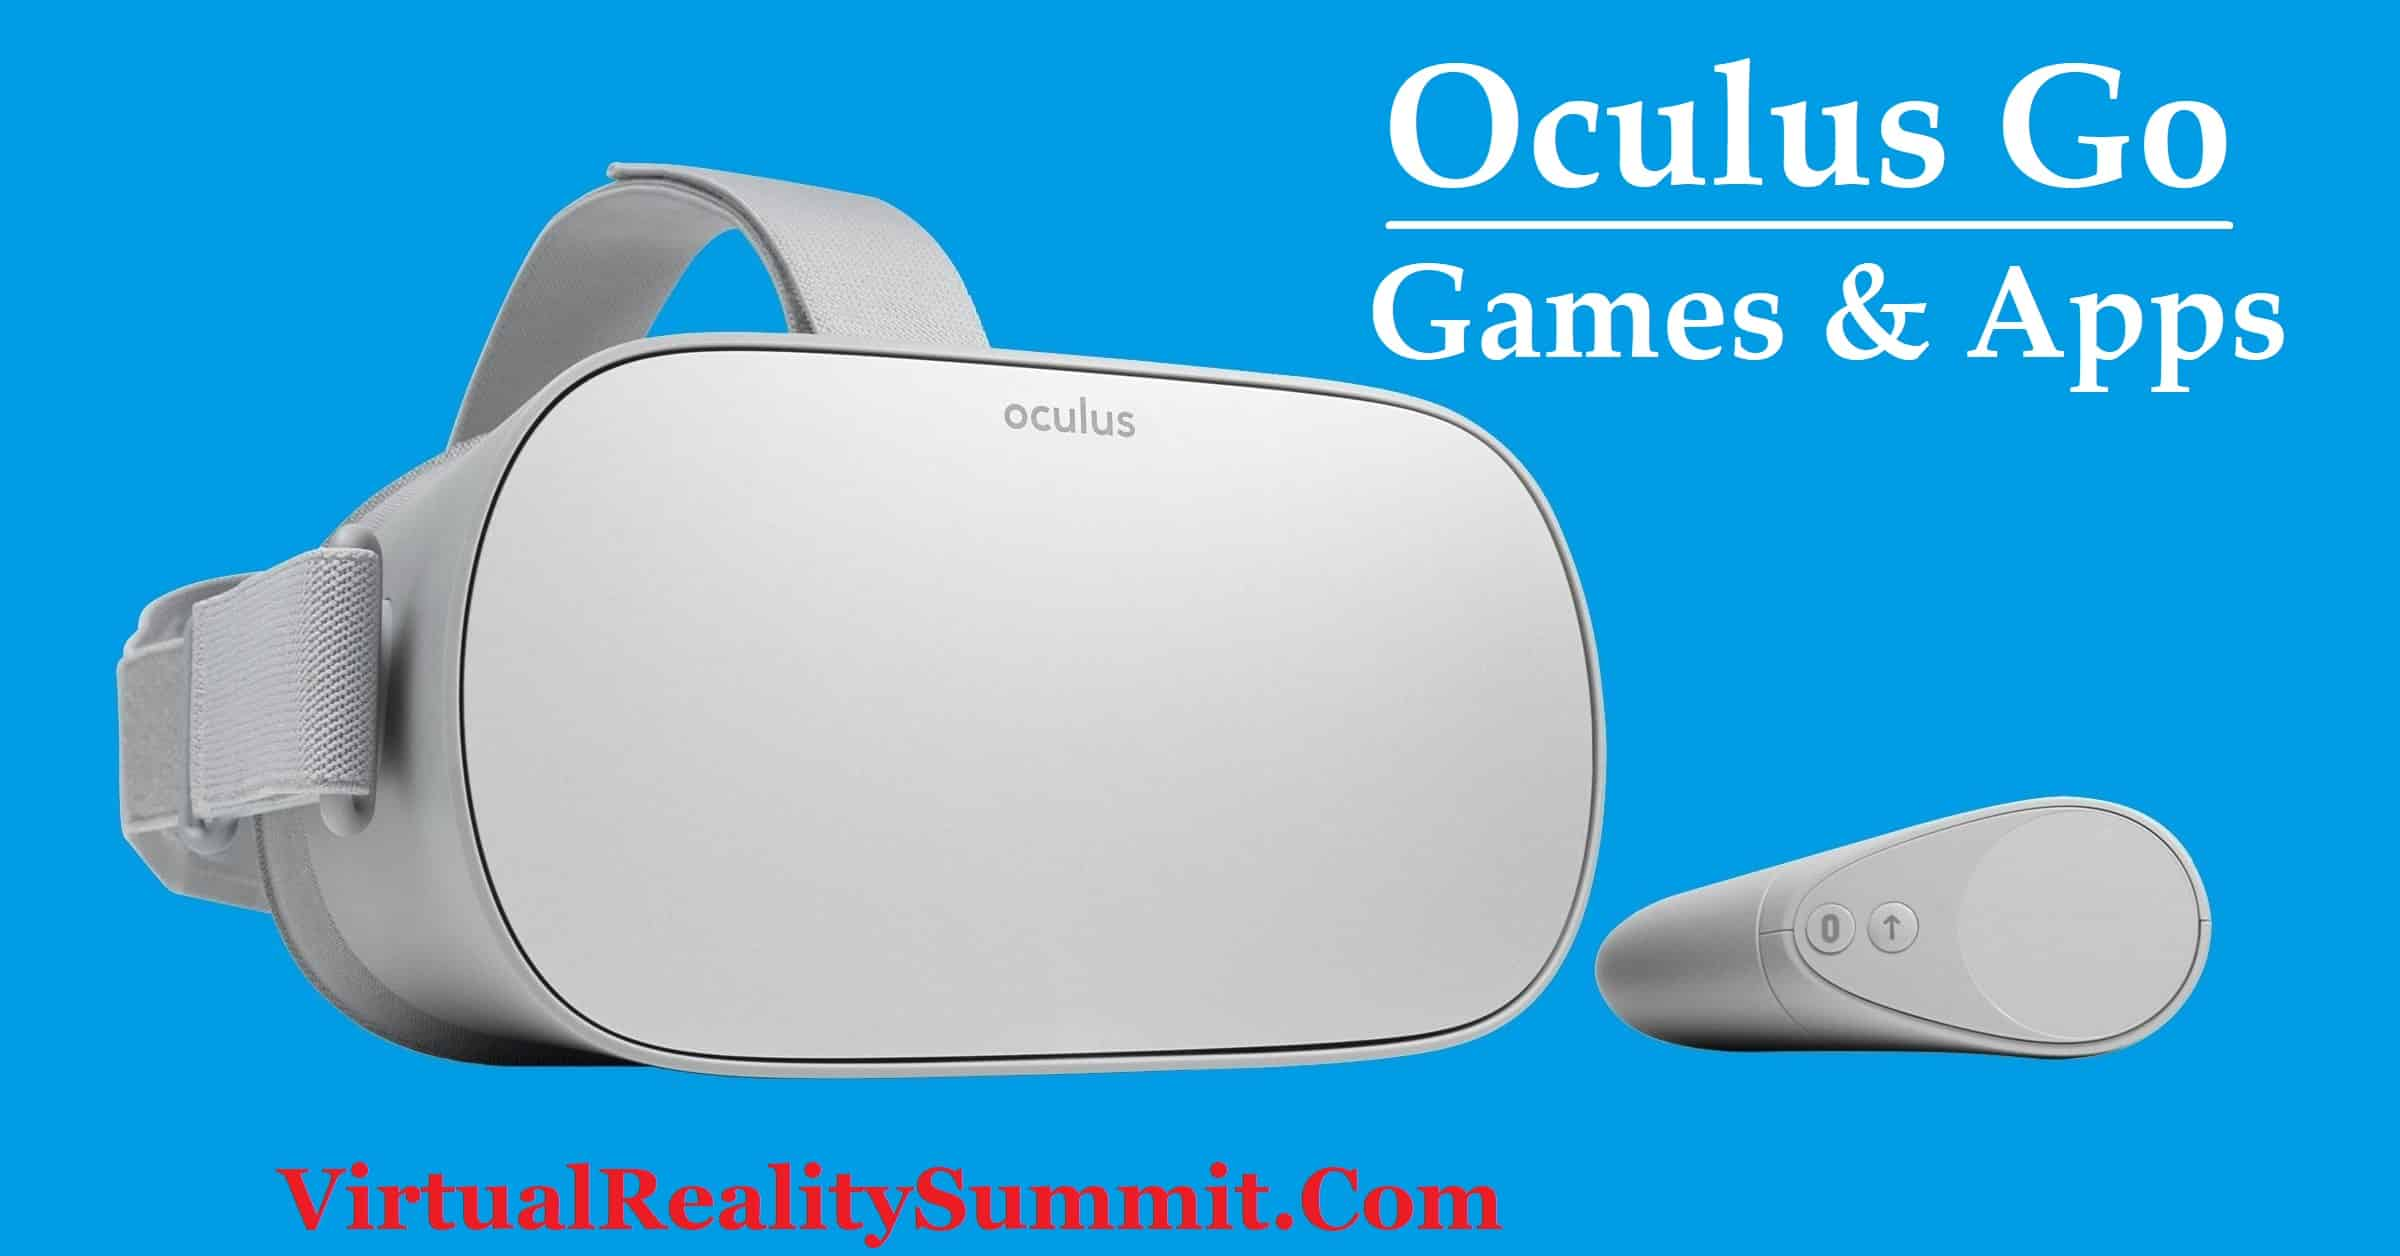 Best Oculus Go Games & Apps in 2020